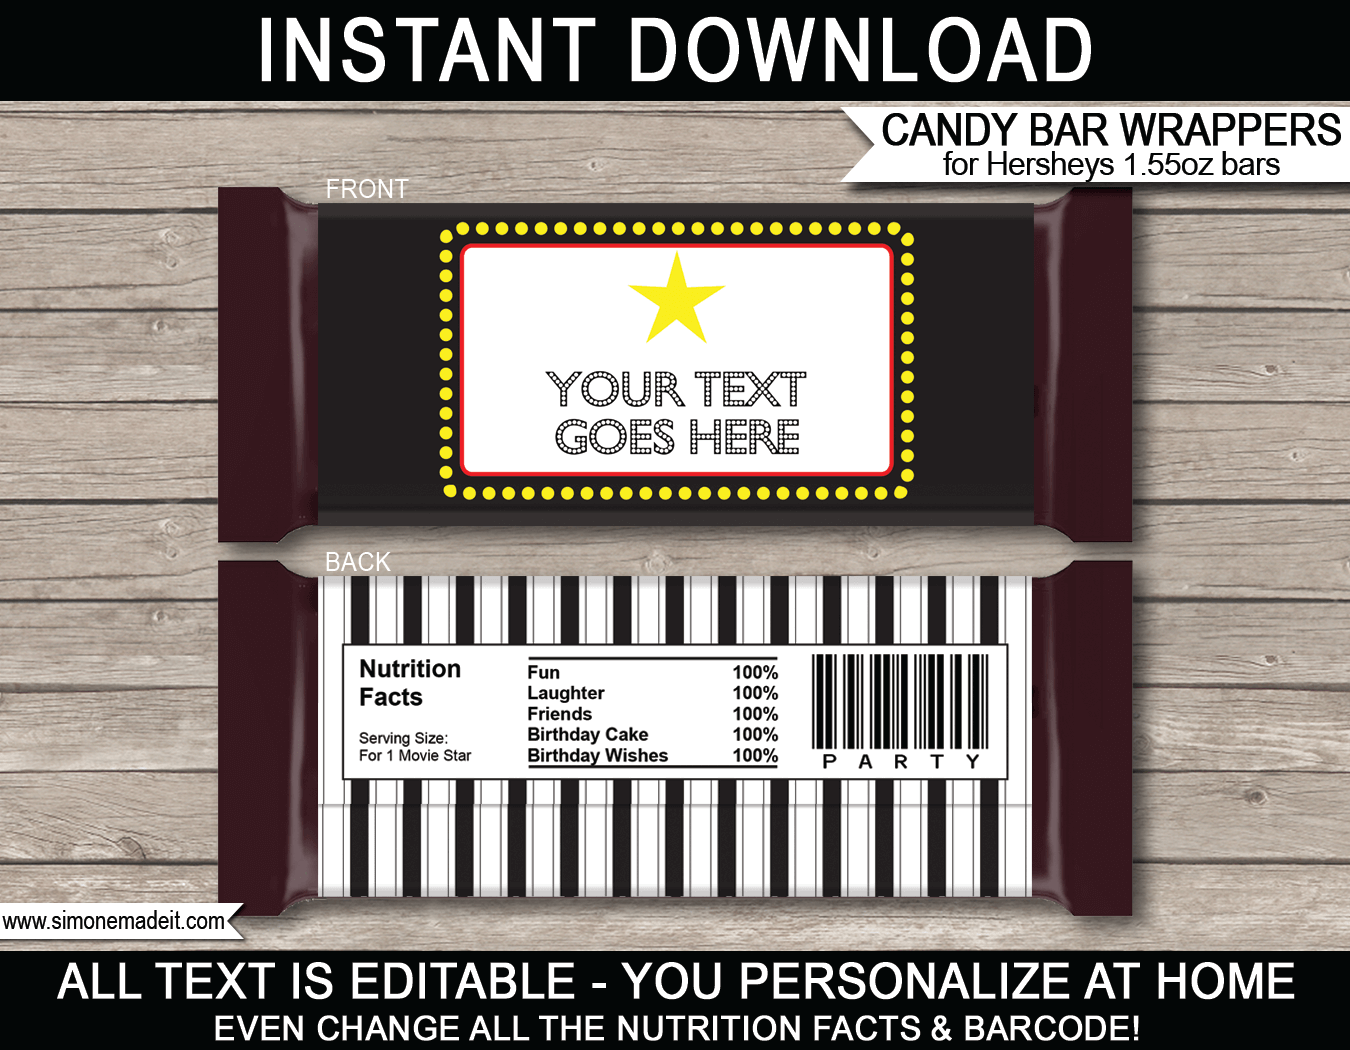 Movie Hershey Candy Bar Wrappers  Personalized Candy Bars. Hair Salon Price List Template. Bathroom Cleaning Checklist Template. Executive Summary Word Template. Purchase Order Template Excel. Volunteer Sign Up Template. Flyer Layout Template Free. Non Profit Proposal Template. Free Christmas Poster Template